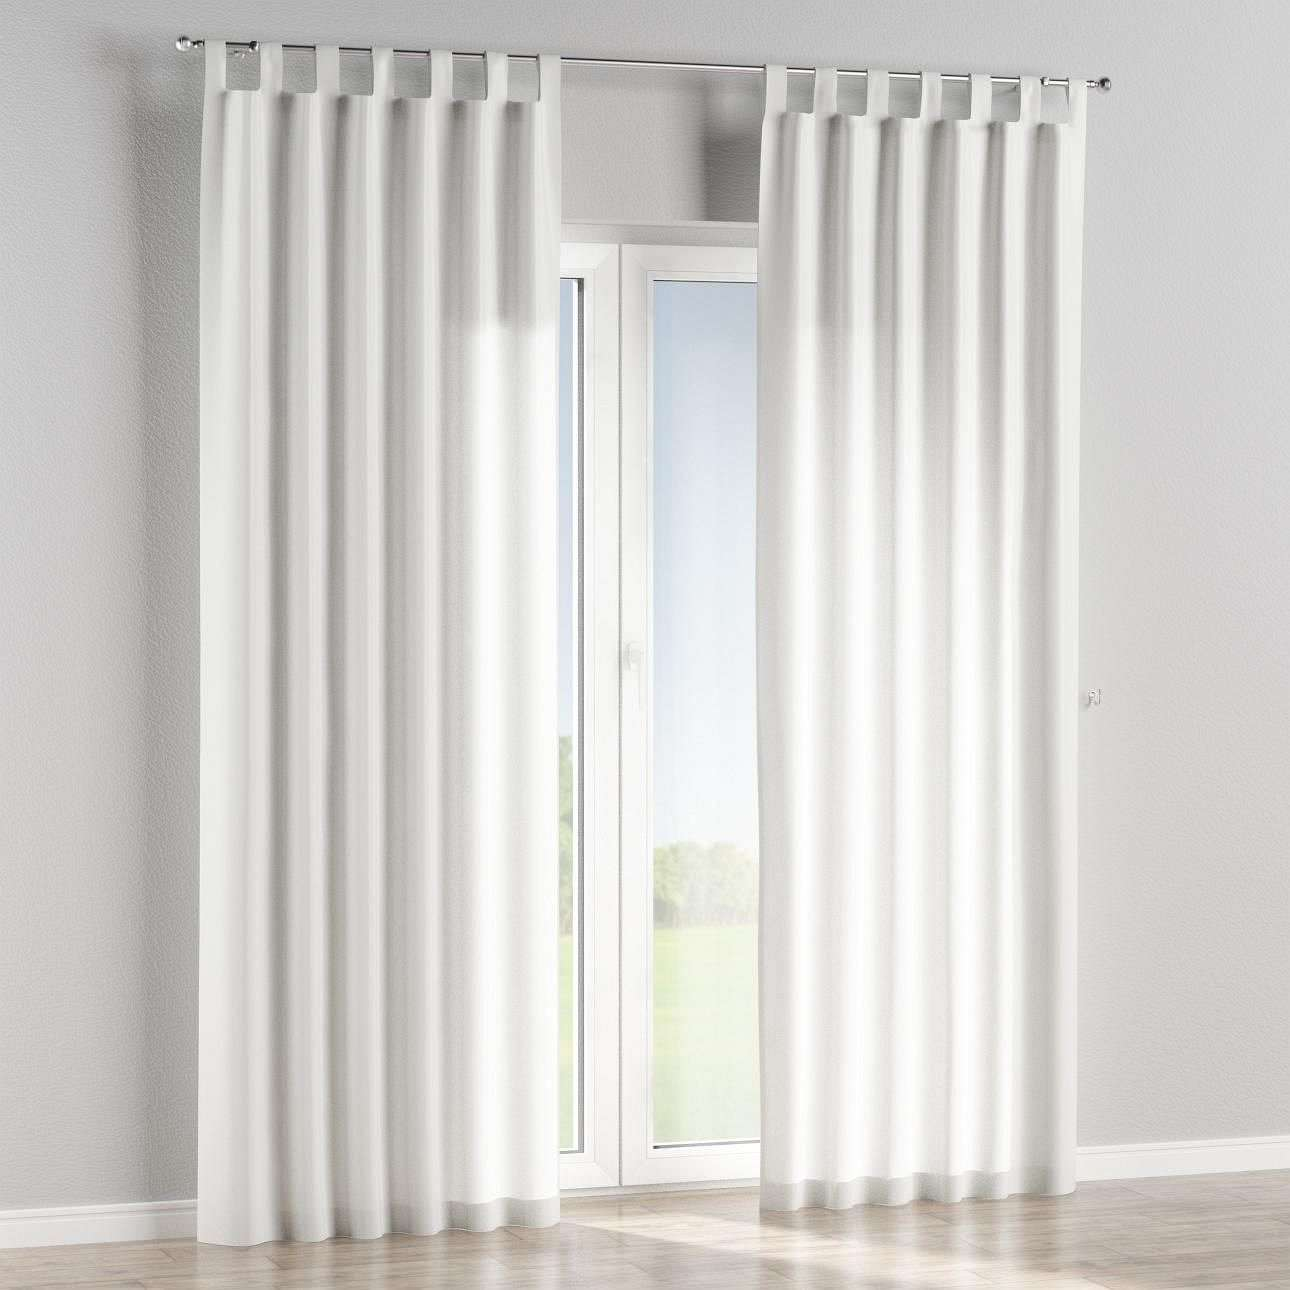 Tab top lined curtains in collection Ashley, fabric: 137-45